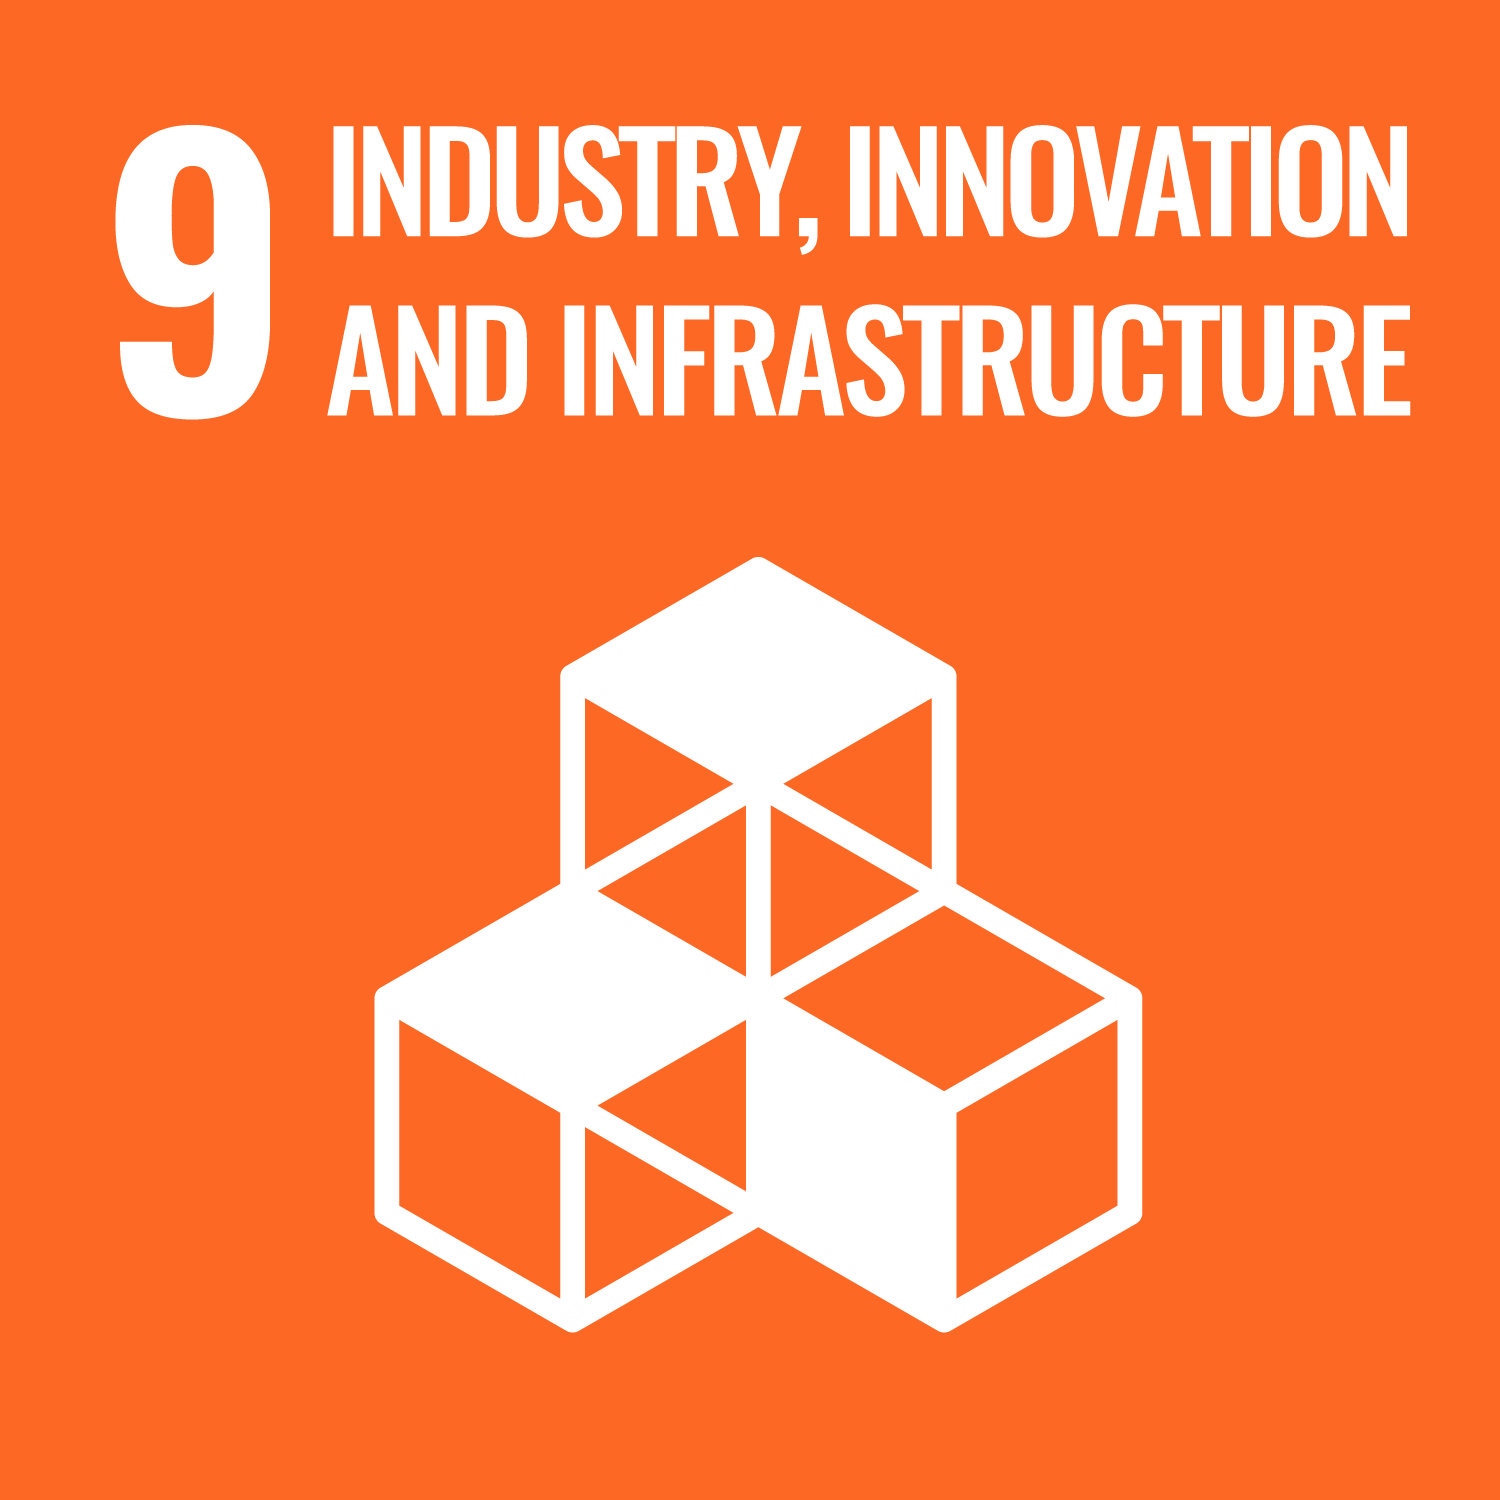 INDUSTRIAL INNOVATION AND INFRASTRUCTURE